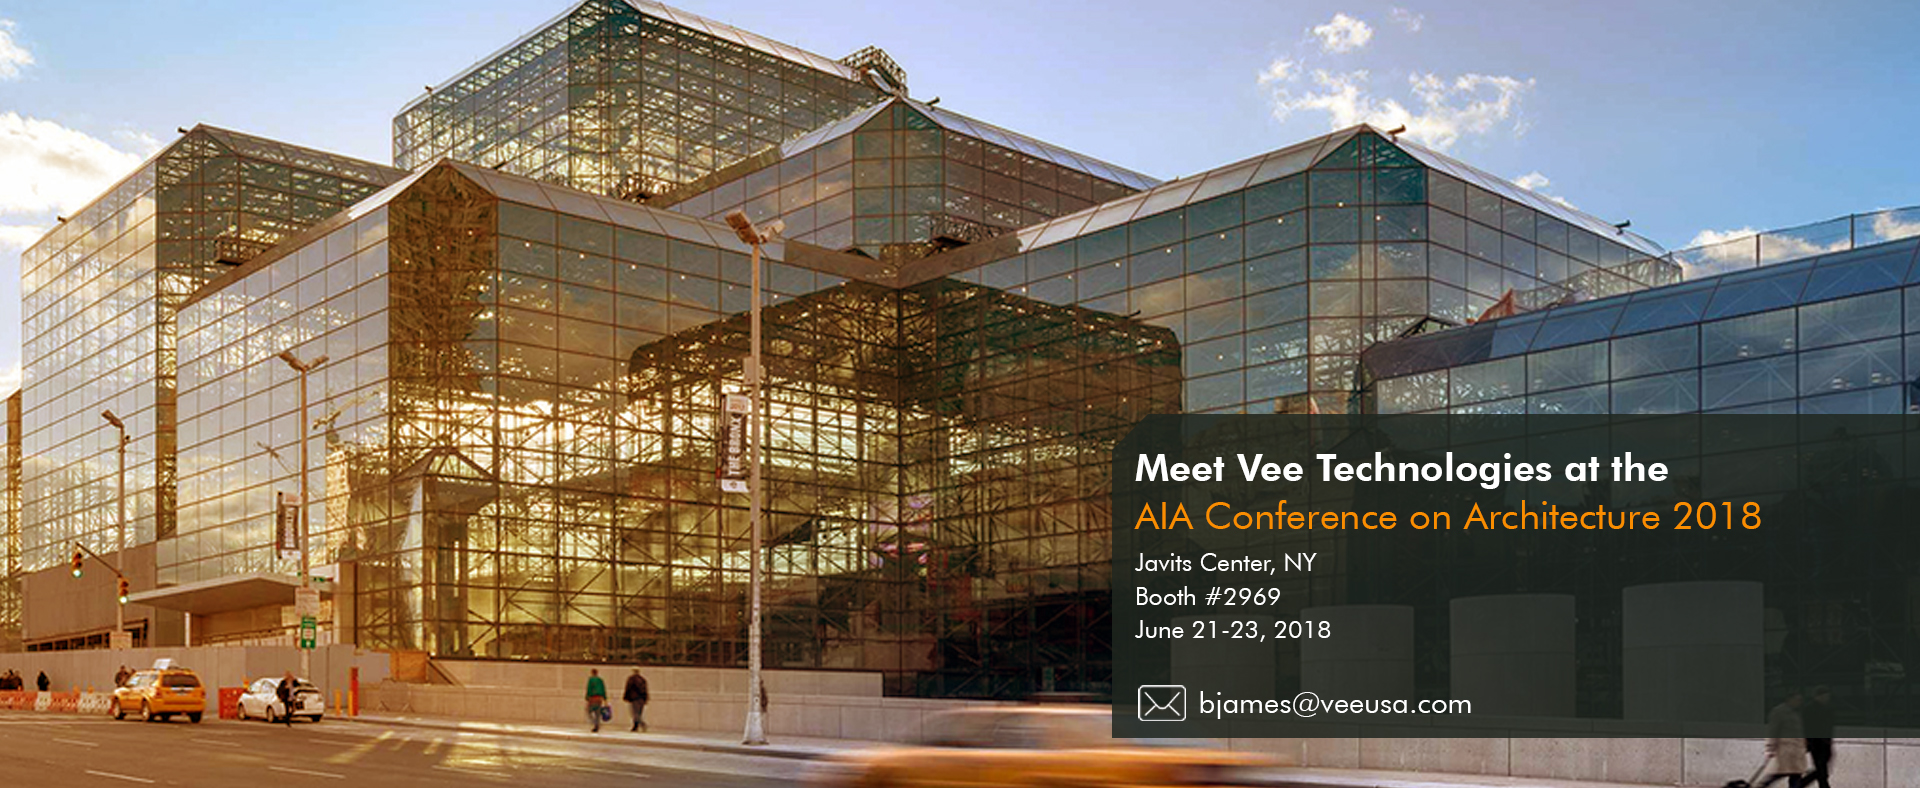 Vee Technologies at A18 - AIA Conference on Architecture 2018